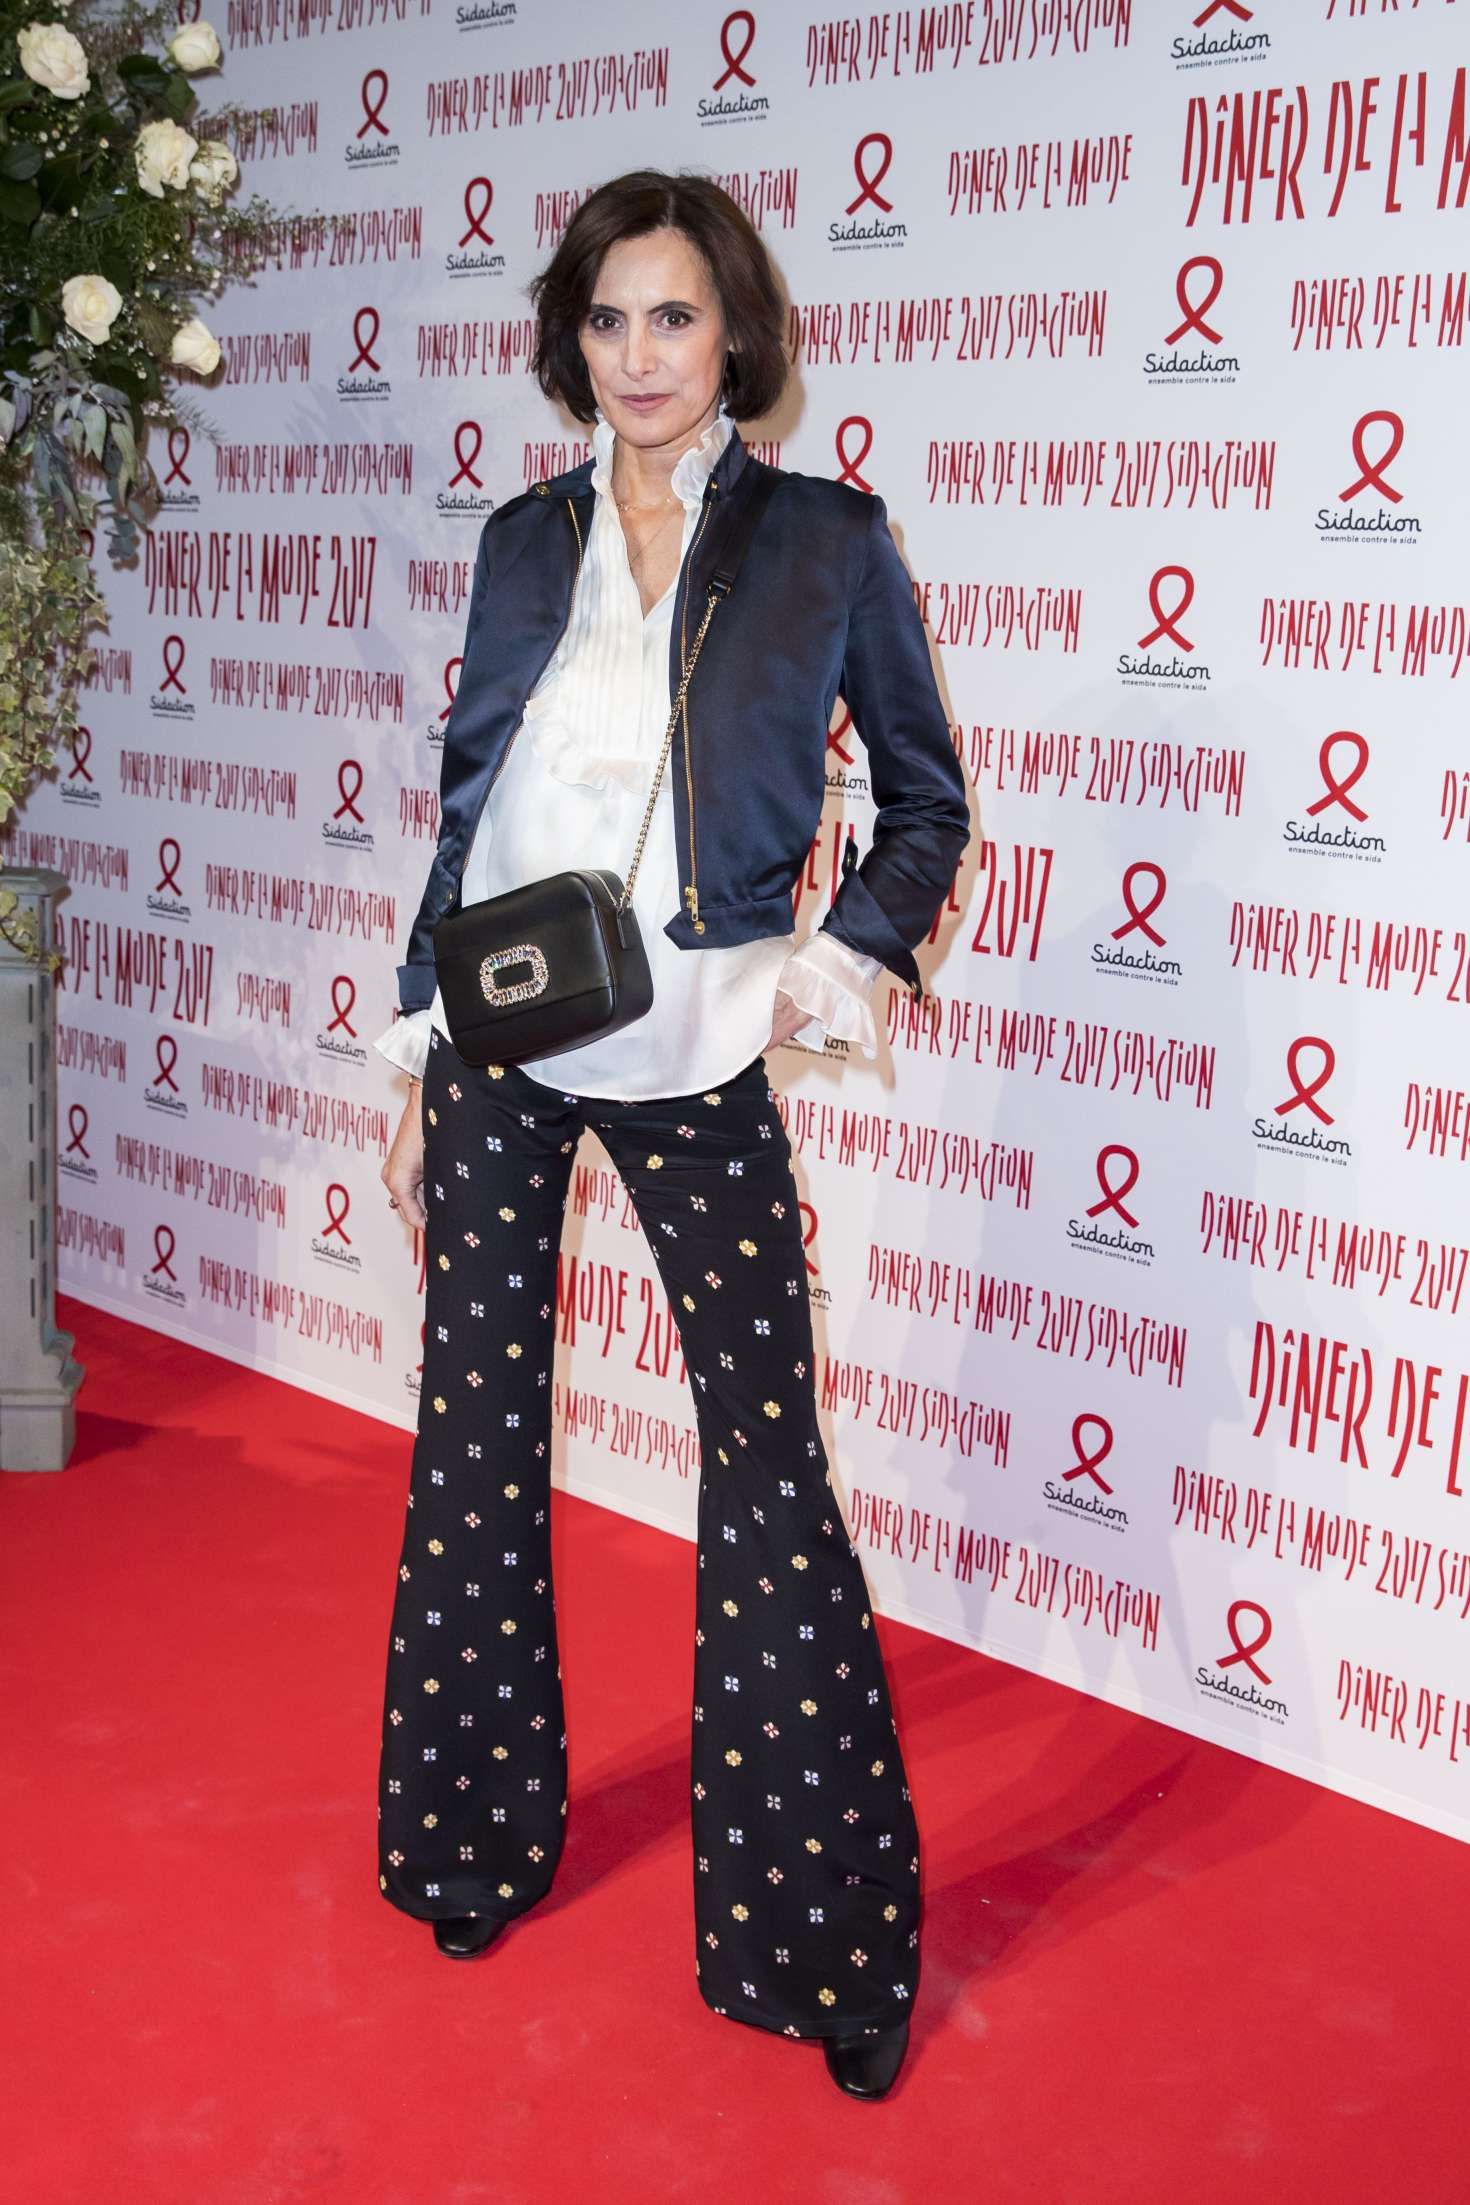 ines de la fressange sidaction gala dinner ss 2017 in paris gotceleb. Black Bedroom Furniture Sets. Home Design Ideas